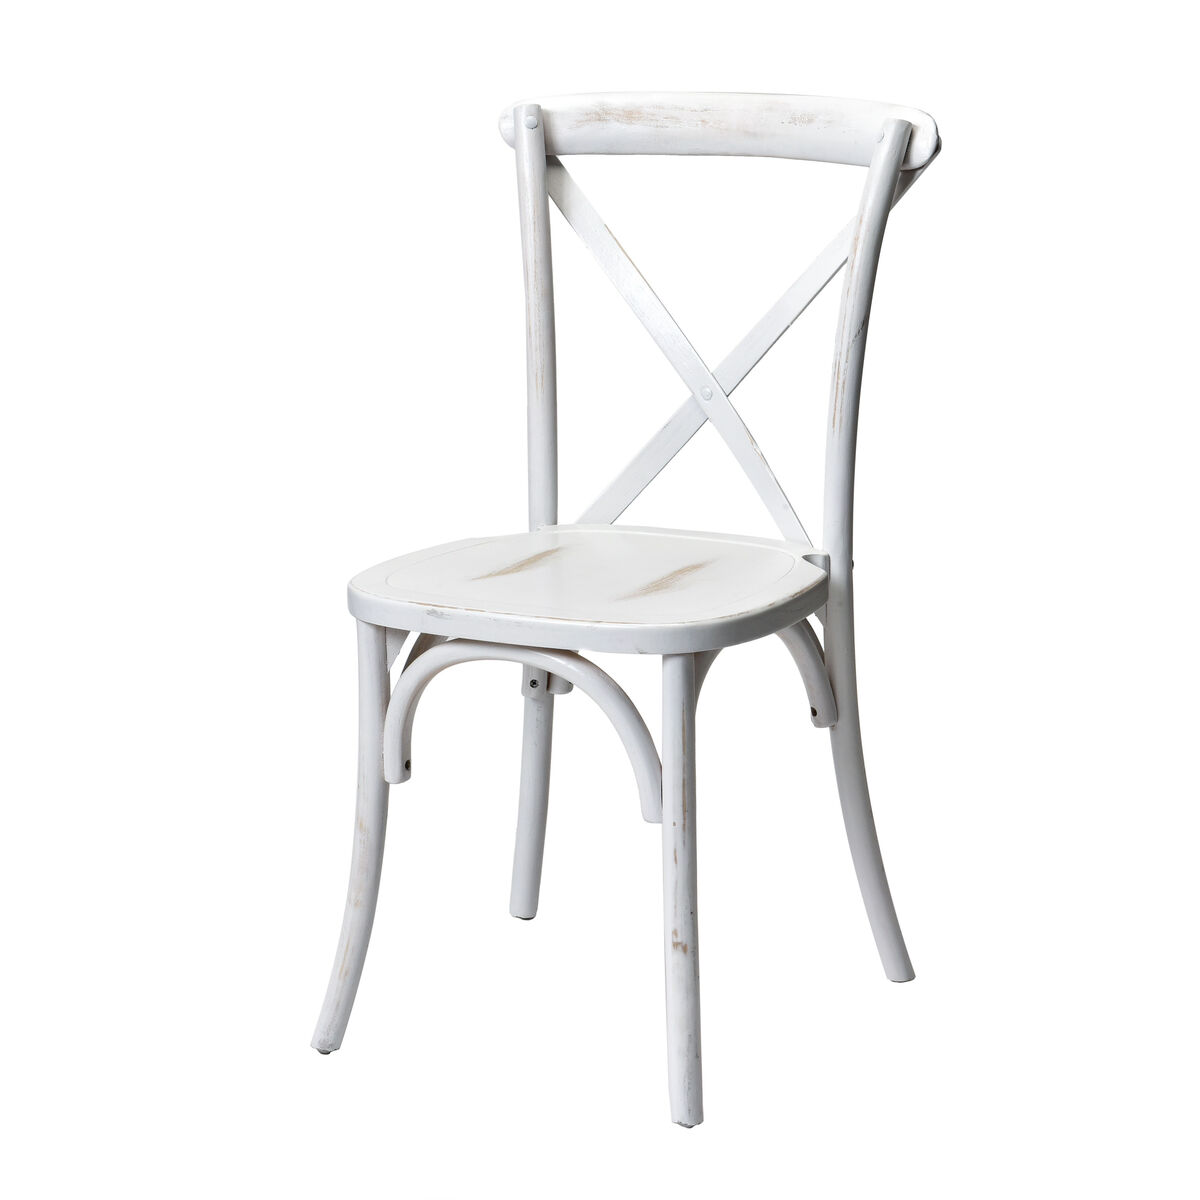 Our Rustic Sonoma Solid Wood Cross Back Stackable Dining Chair White Wash Is On